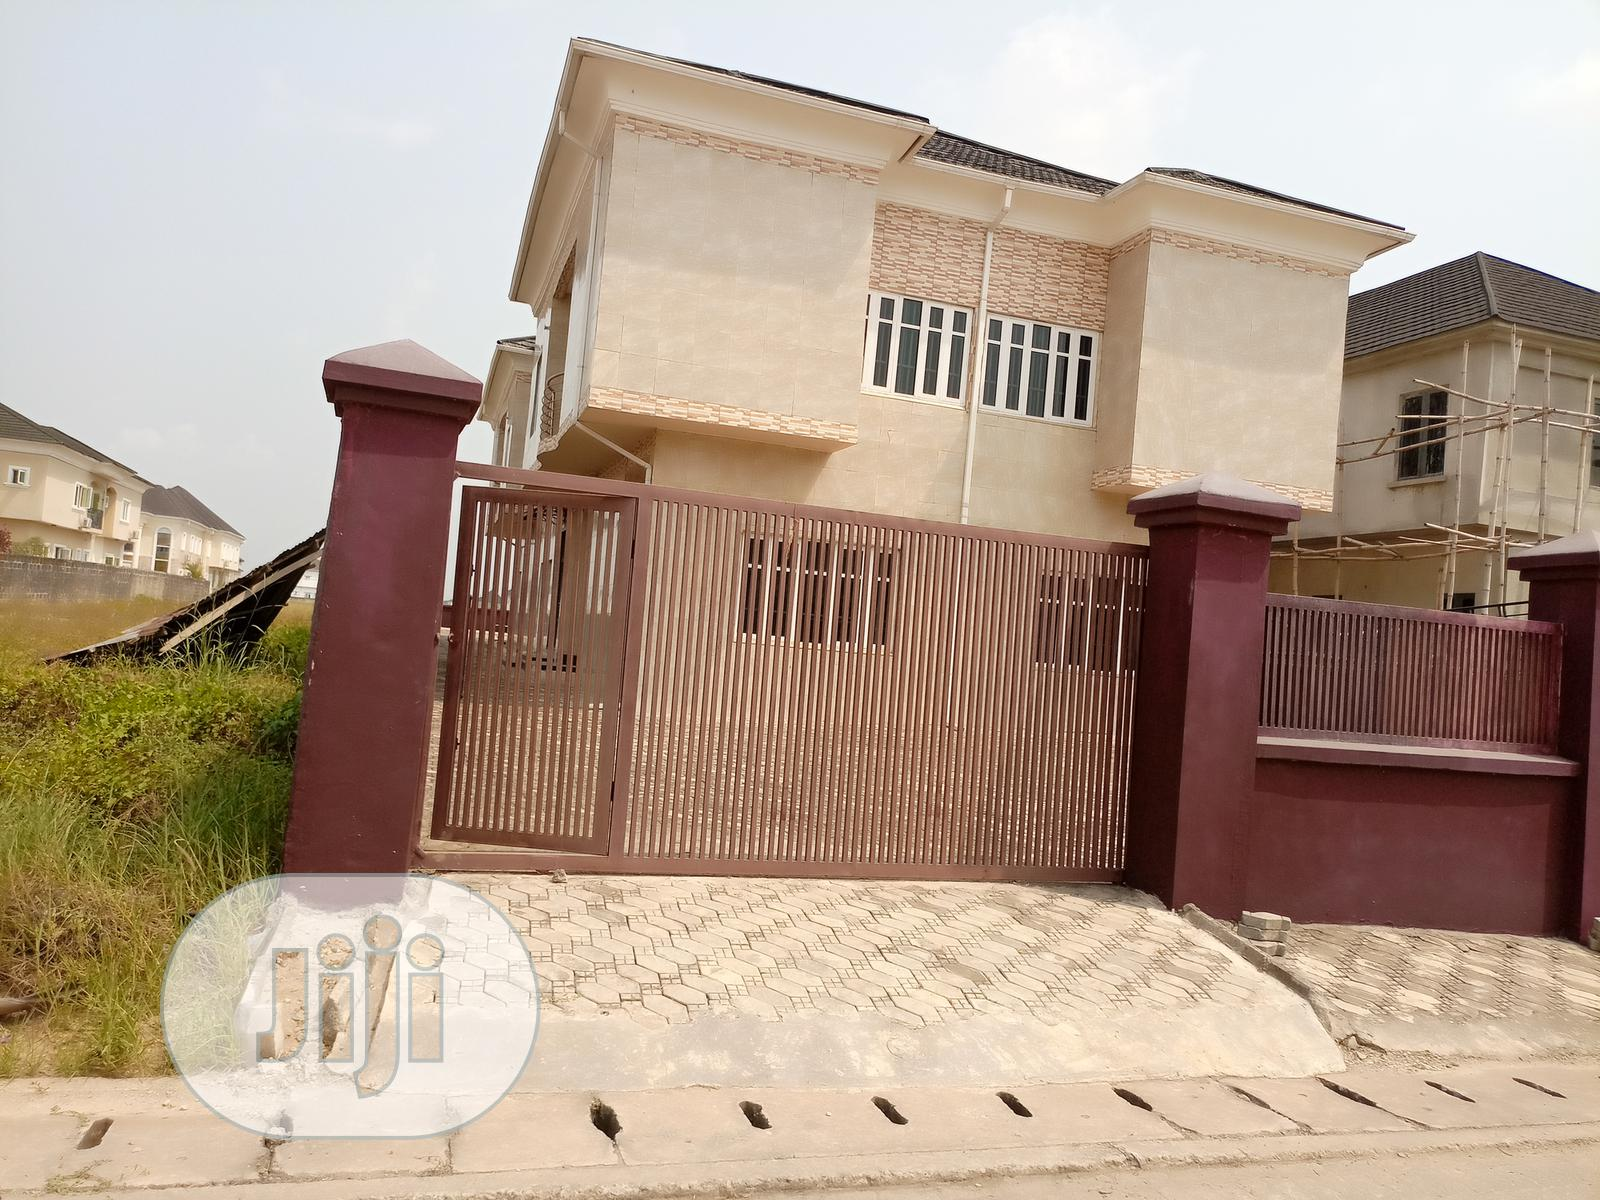 5 Bedrooms Duplex With a Bq for Sale at Mayfair Gardens Esta